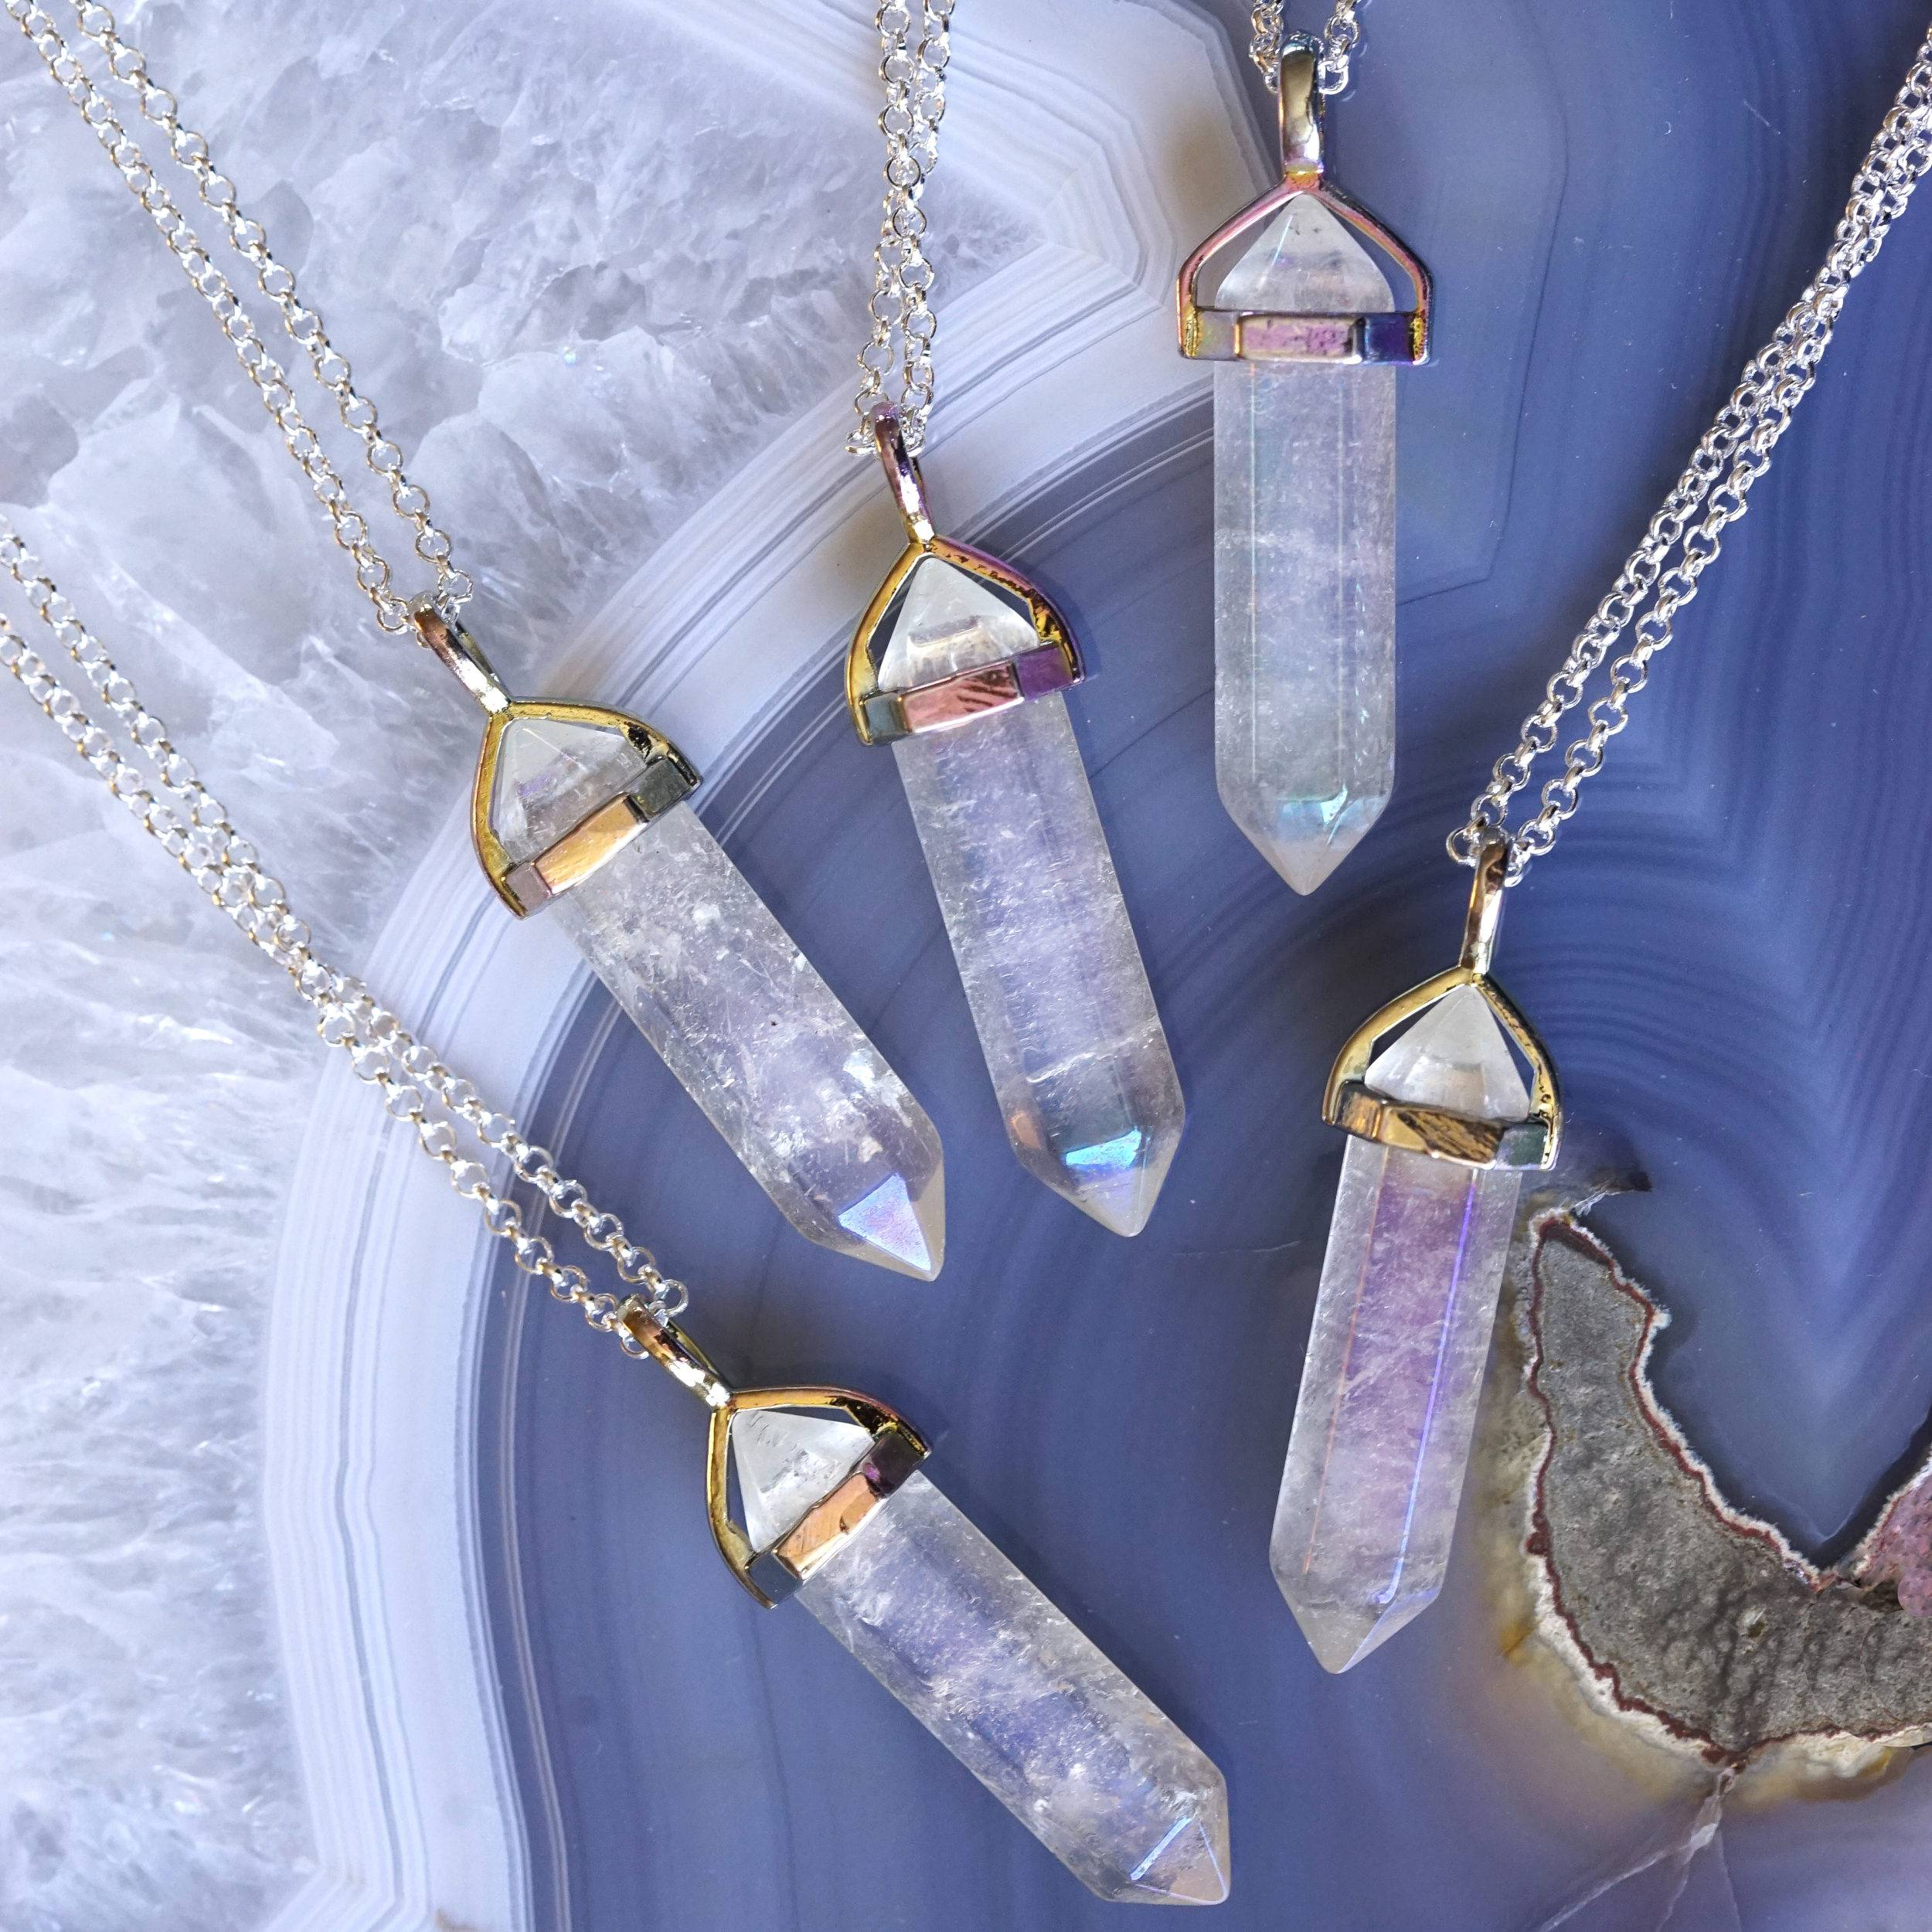 Angel aura quartz pendants to connect your spirit to the higher realms angel aura quartz pendants mozeypictures Image collections